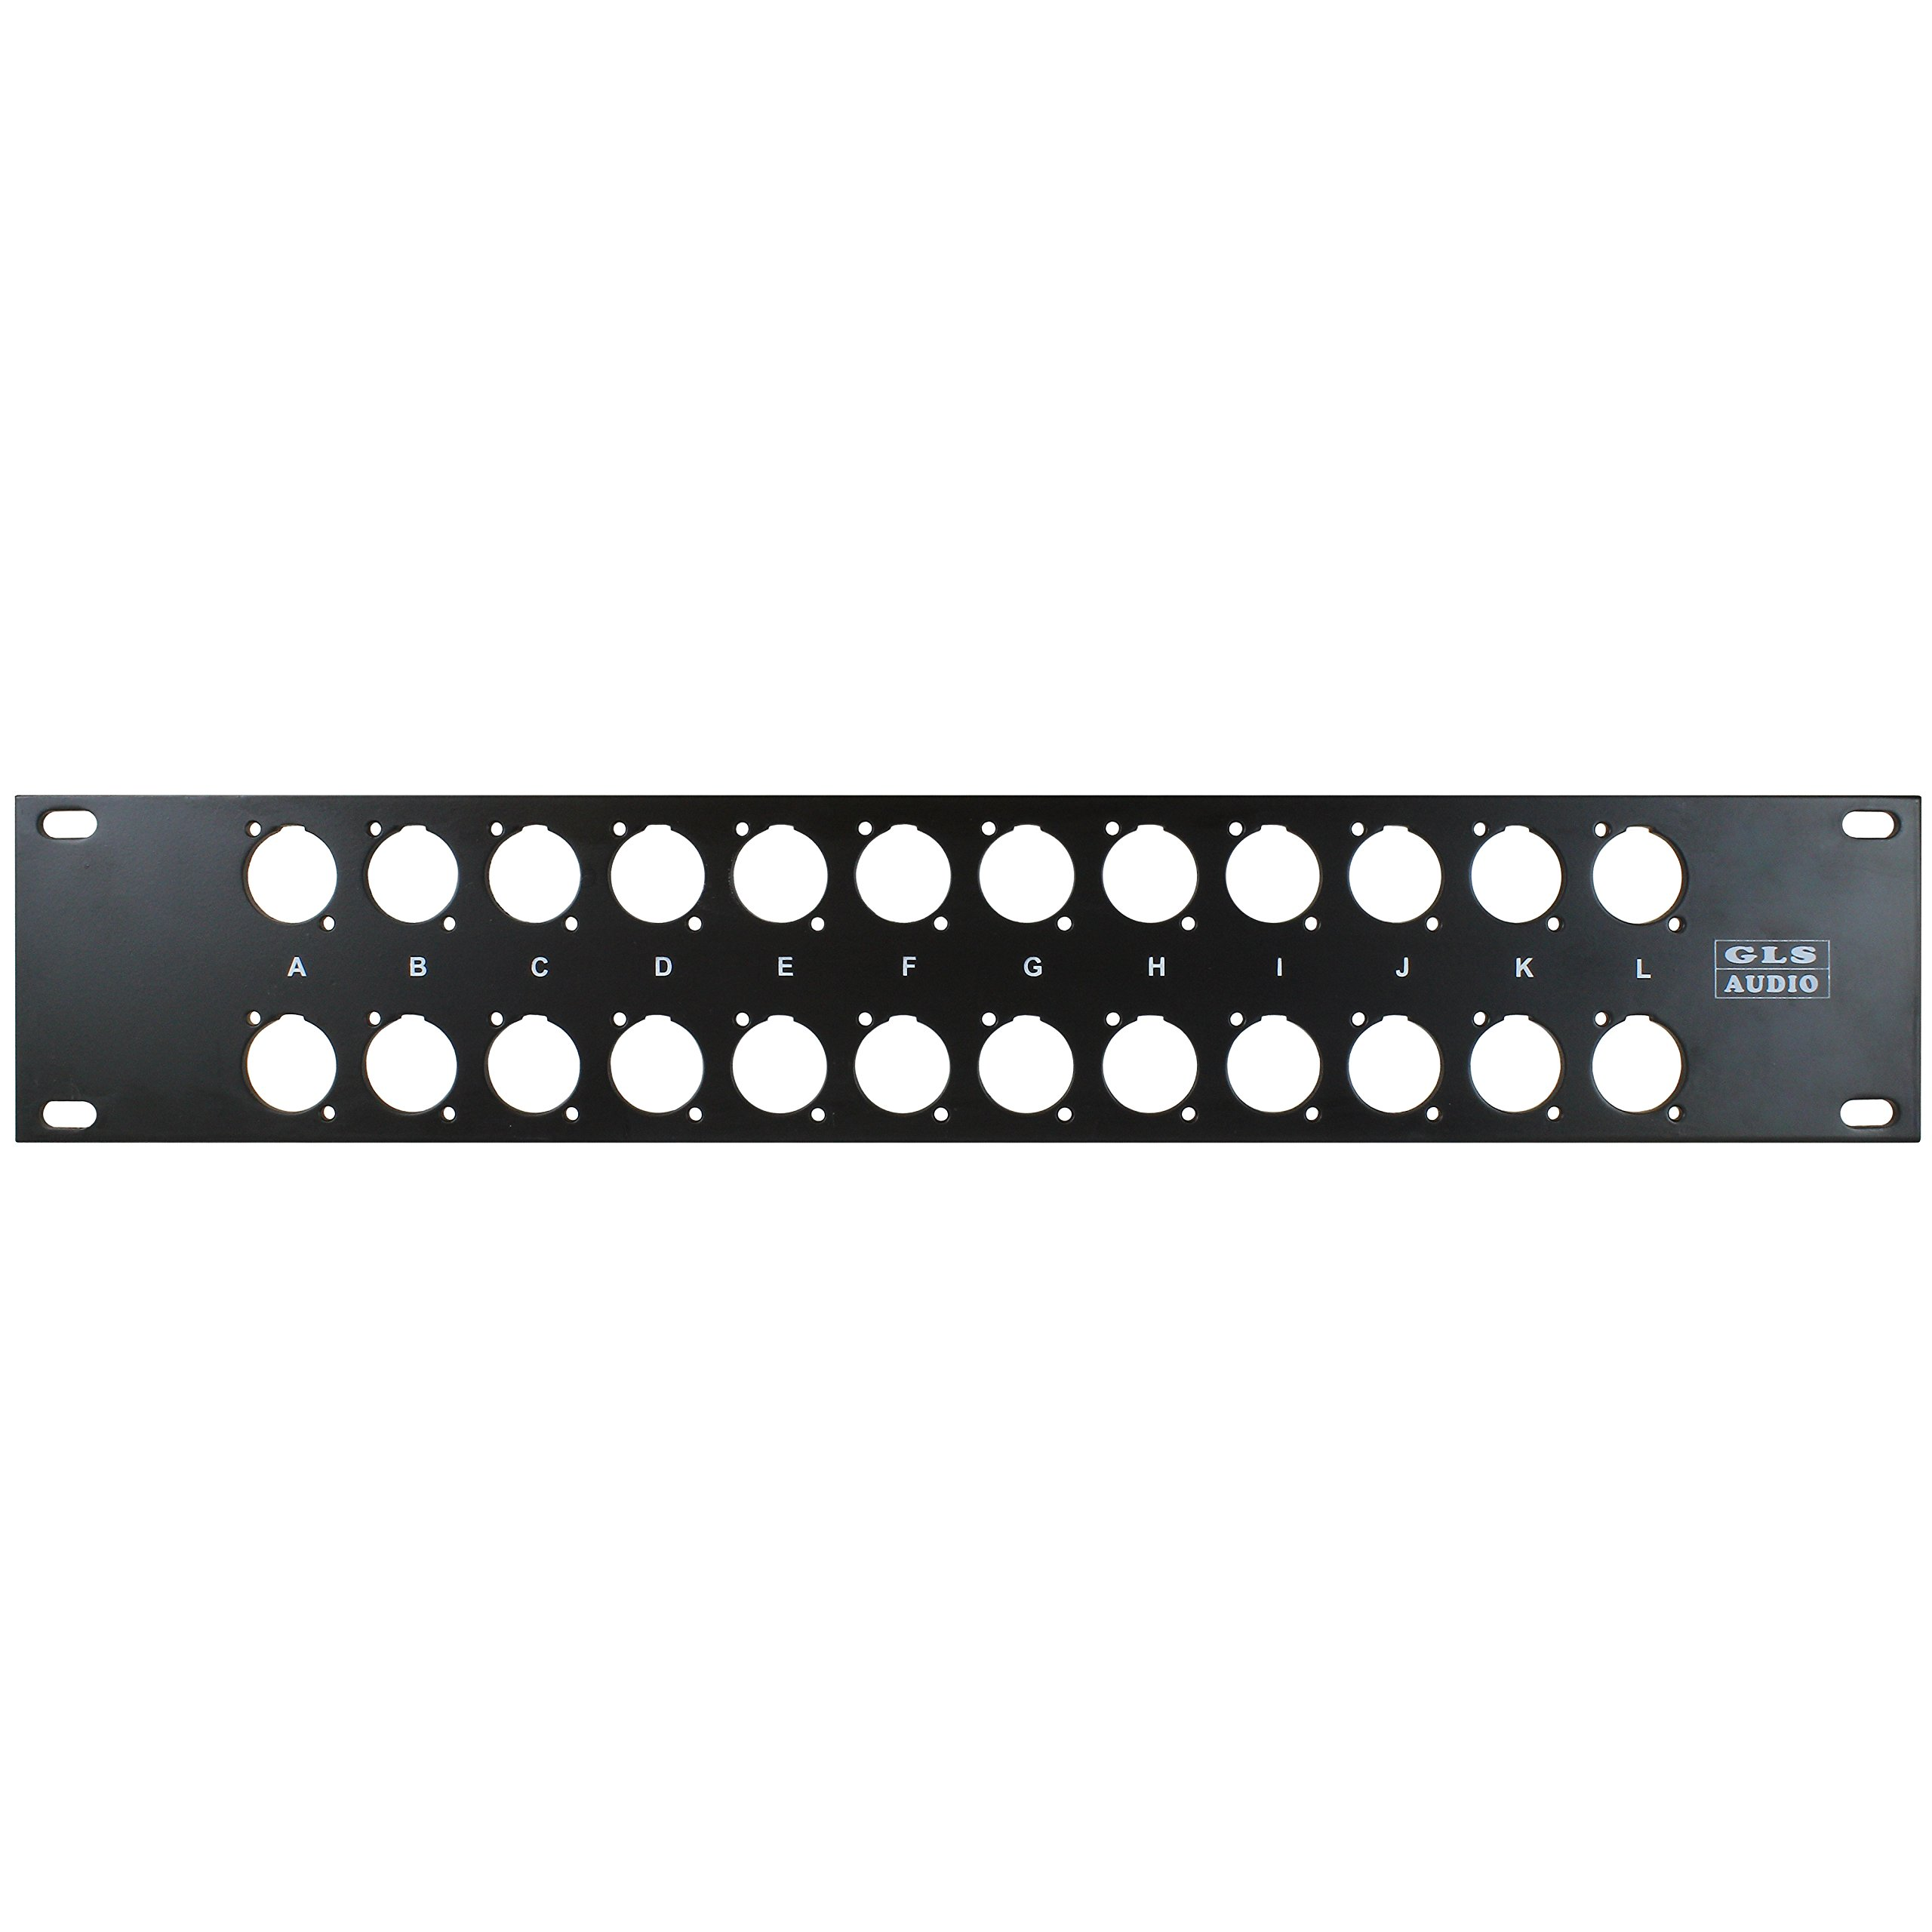 GLS Audio 24 Hole Rack Patch Panel SWP-24XLR-GLS Two Double Space 2U